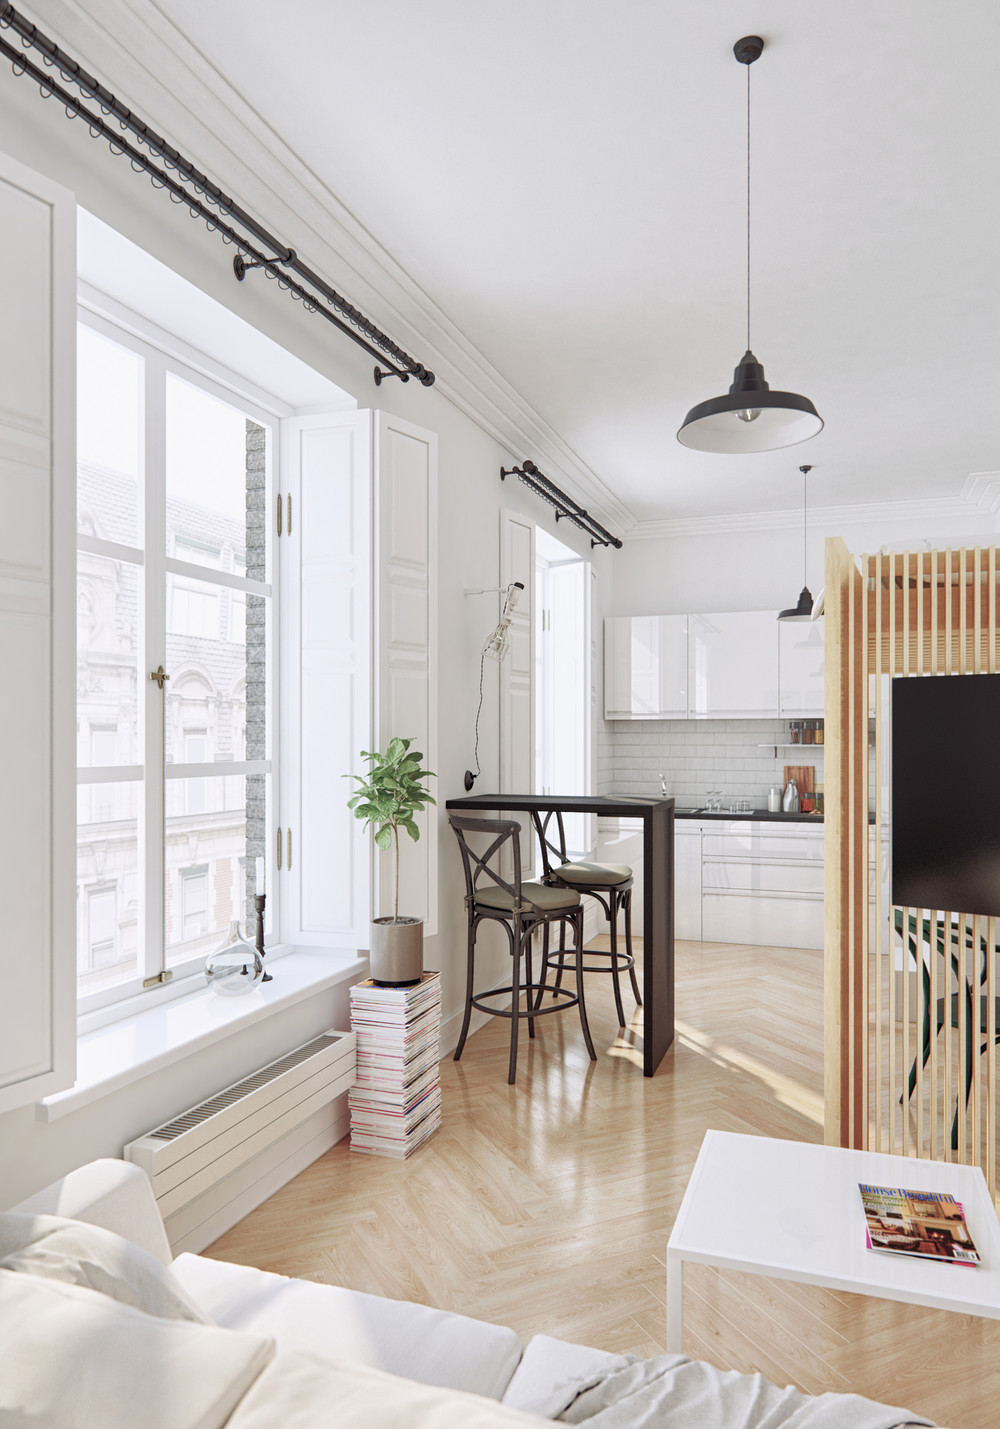 Classic Furniture In Modern Apartment - 4 small apartments showcase the flexibility of compact design